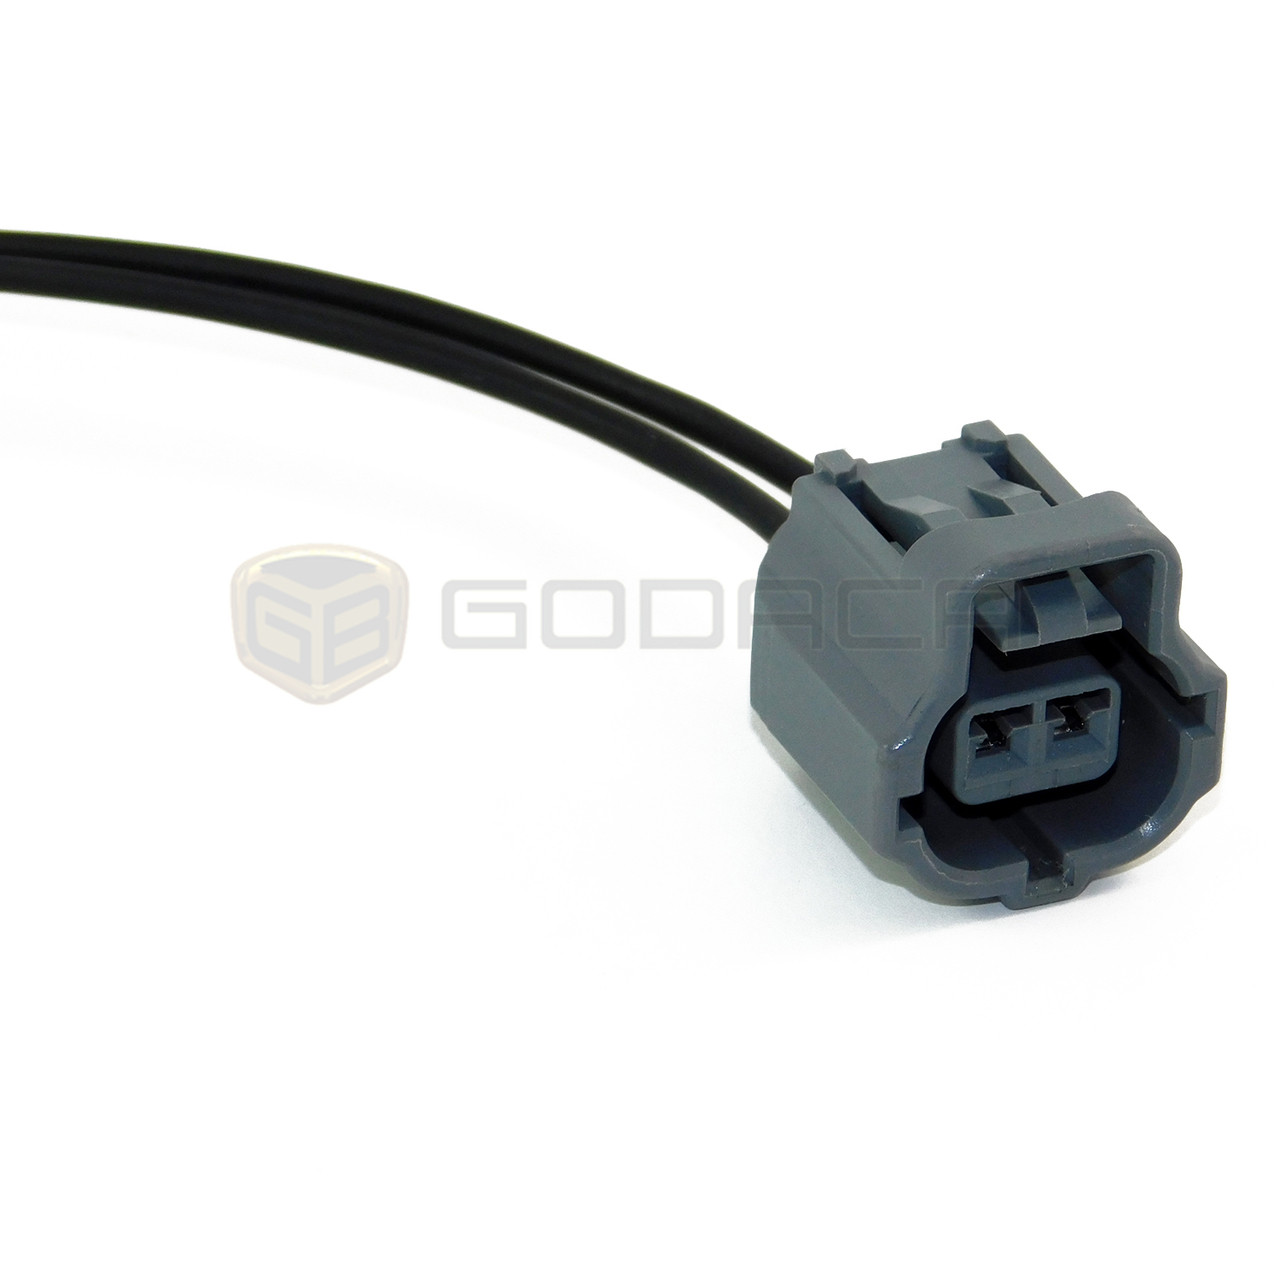 1x Connector Pigtail for Intake Manifold Runner Control Sensor Mazda wpt-545